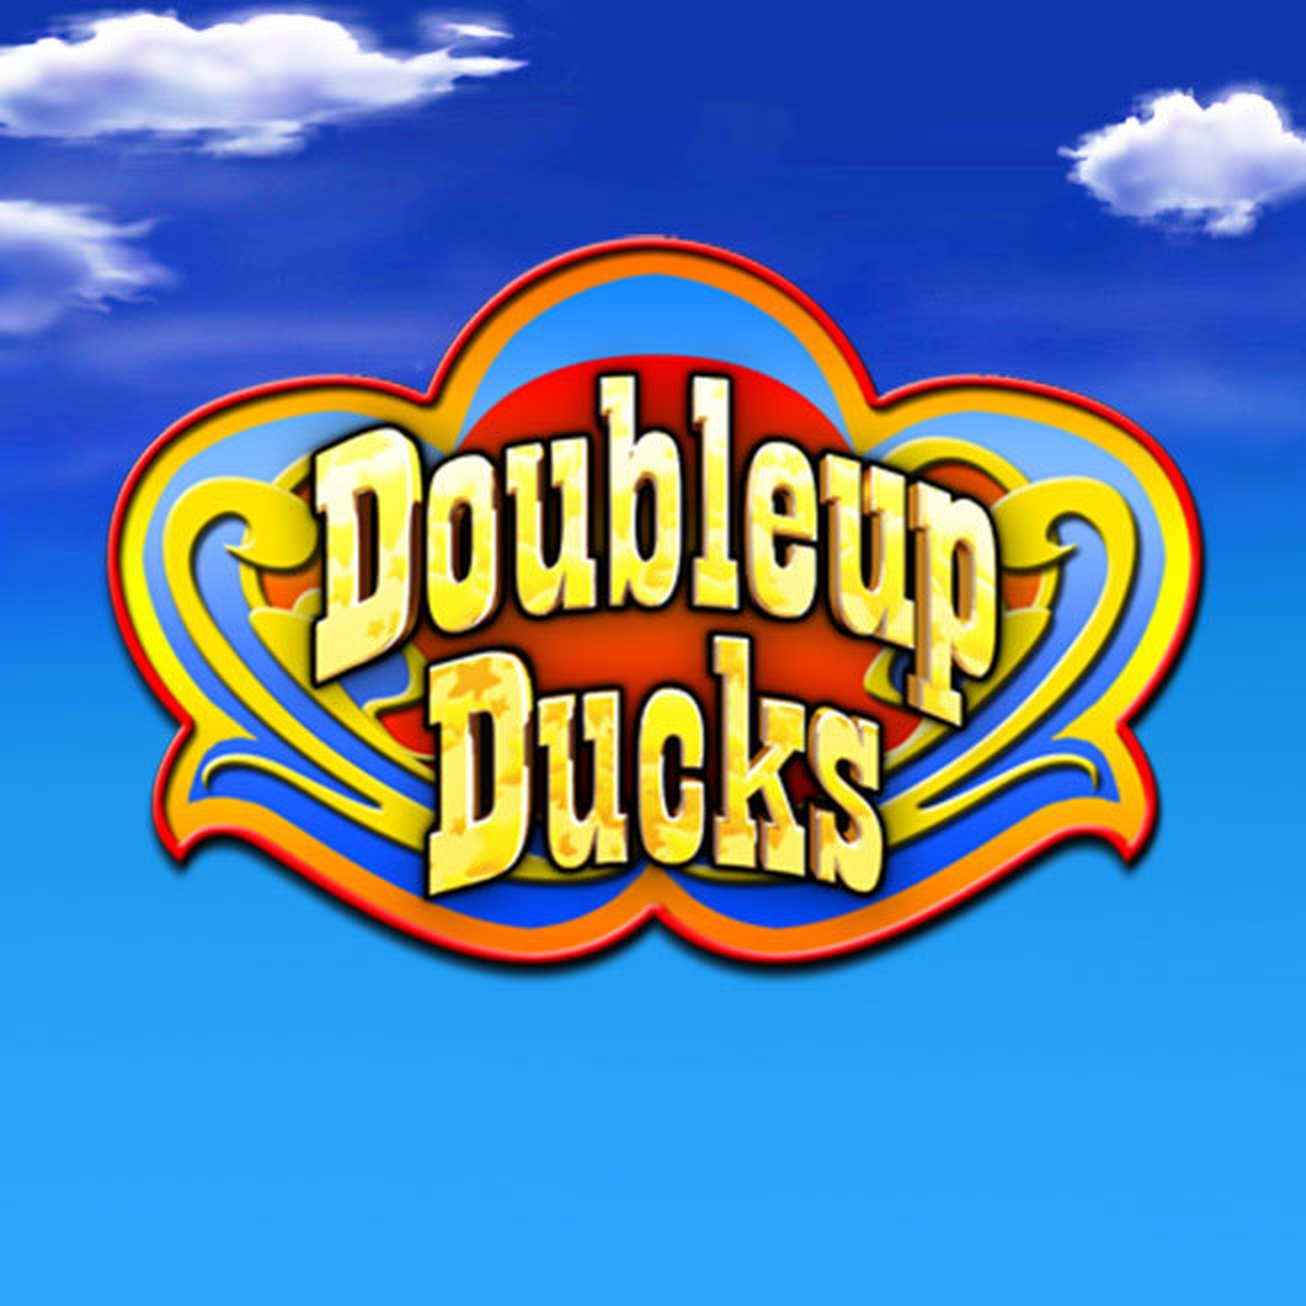 The Doubleup Ducks Online Slot Demo Game by EYECON